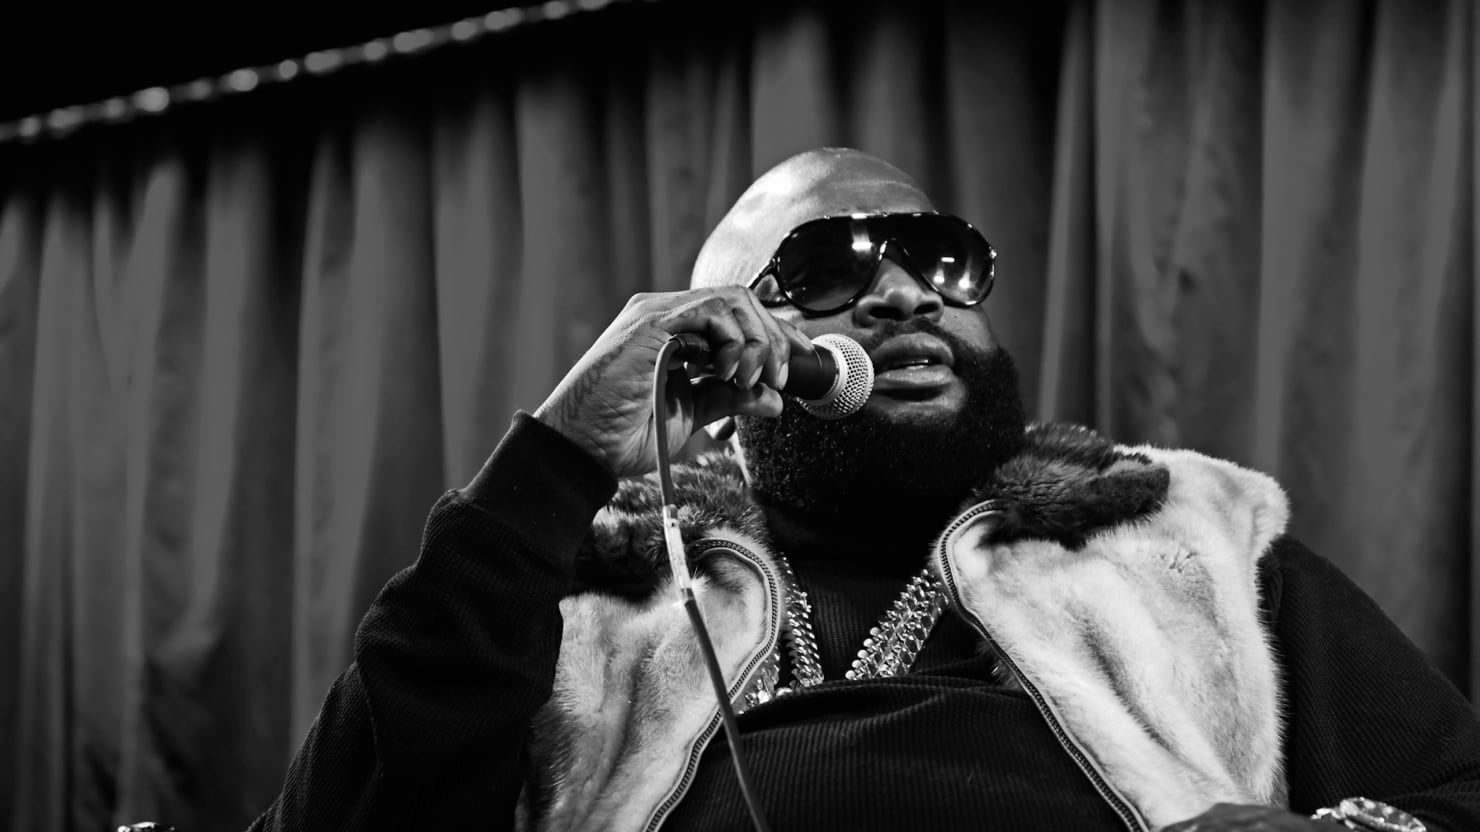 Exclusive: Rapper Rick Ross Discusses Trayvon Martin, Jay Z, Building His MMG Empire, and More